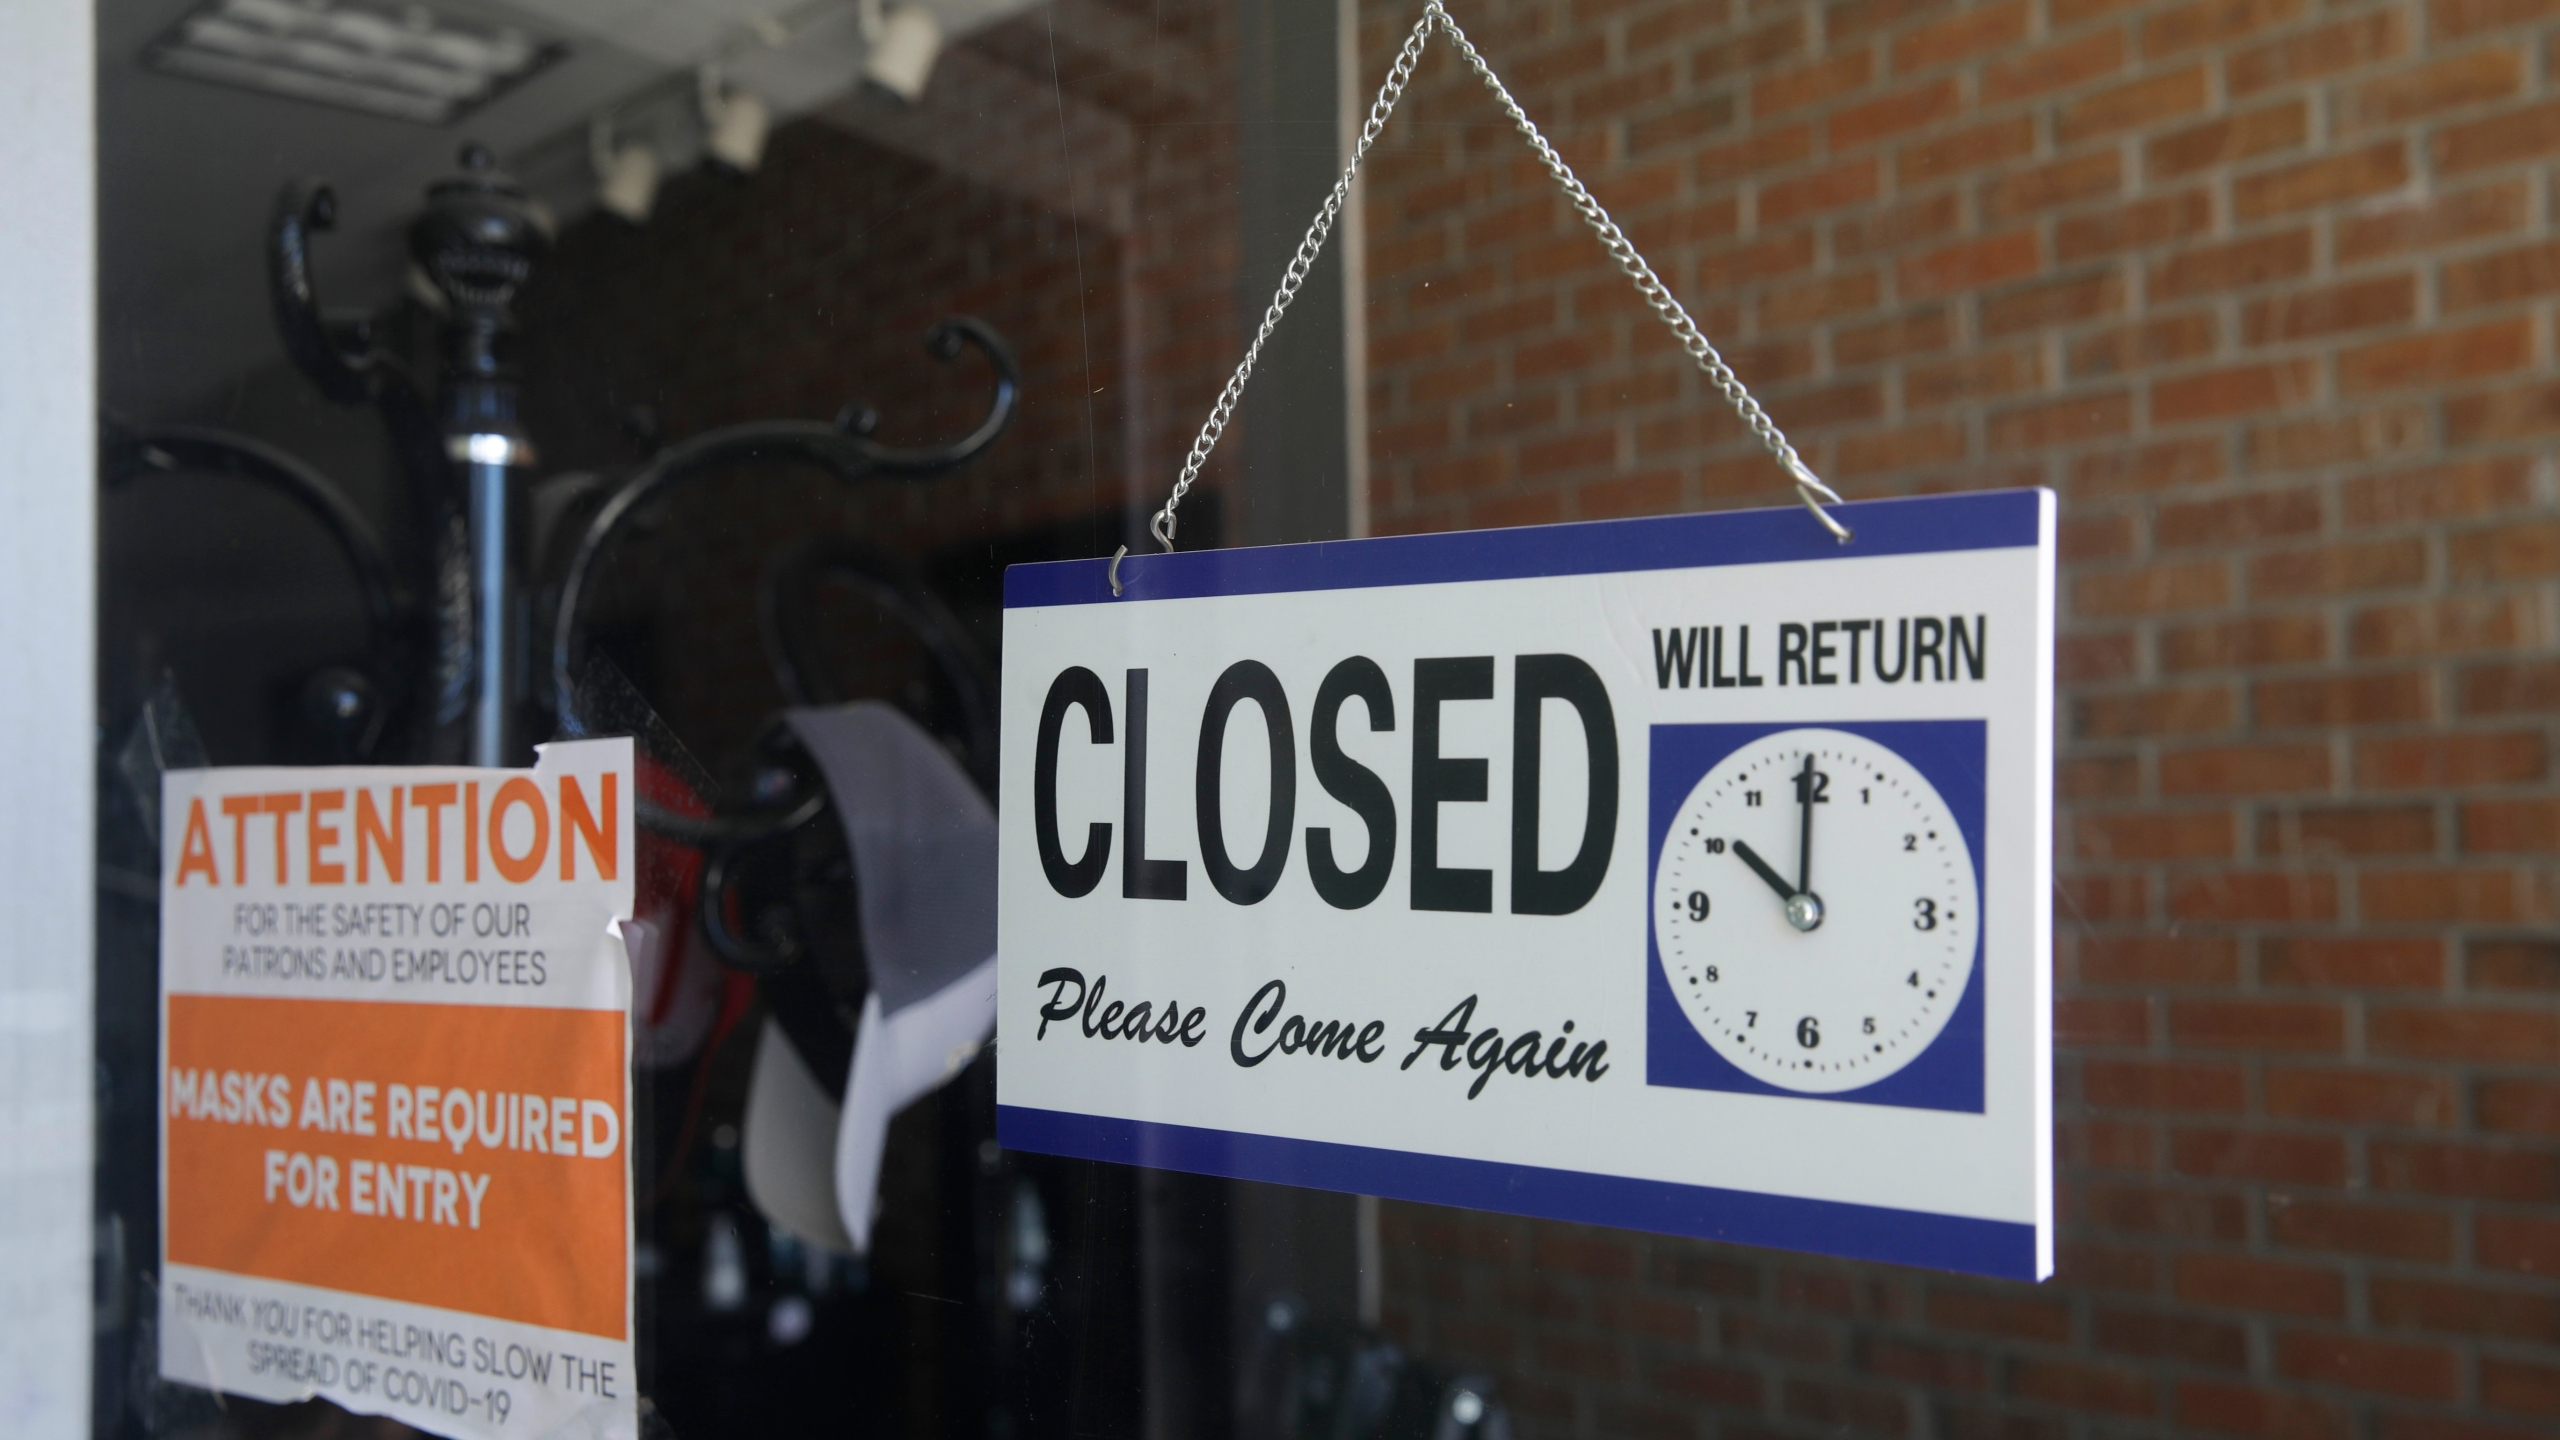 In this July 18, 2020, file photo a closed sign hangs in the window of a barber shop in Burbank, Calif. (AP Photo/Marcio Jose Sanchez)In this July 18, 2020, file photo a closed sign hangs in the window of a barber shop in Burbank, Calif. (AP Photo/Marcio Jose Sanchez)